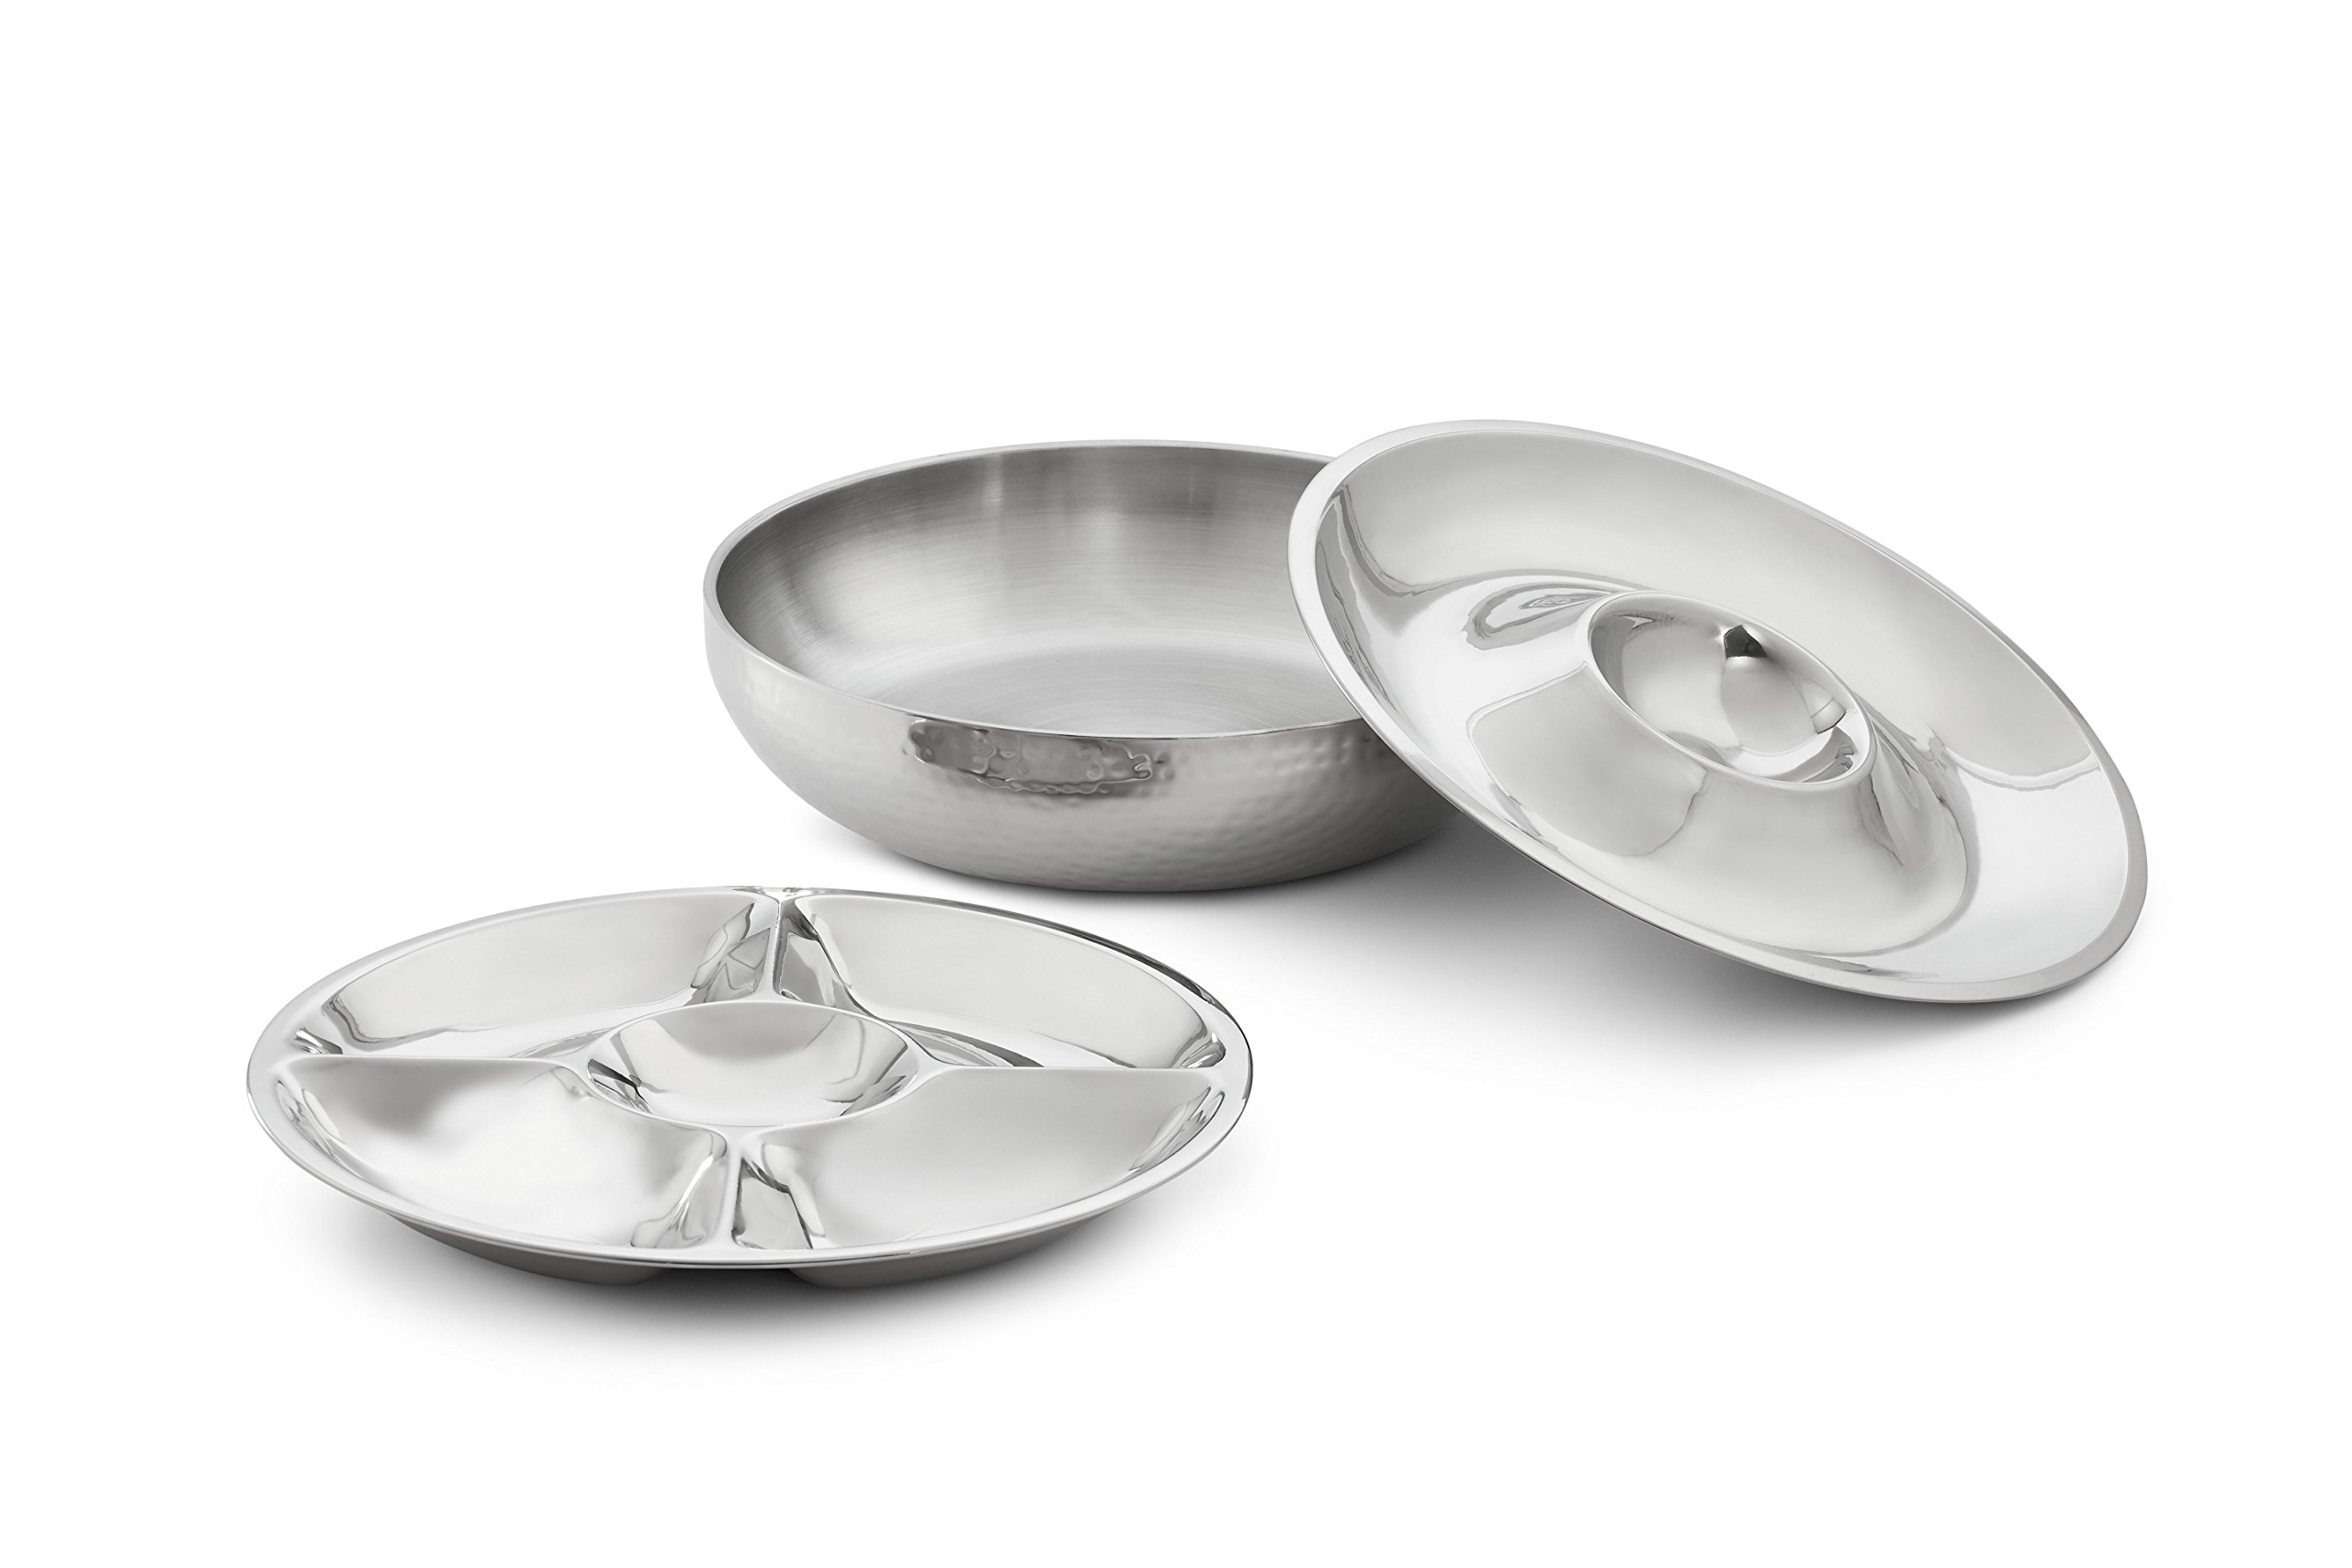 Artisan 3-Piece Stainless Steel Serving Bowl with 2-Section and 5-Section Top Trays and Insulated Lower Bowl by NUCU